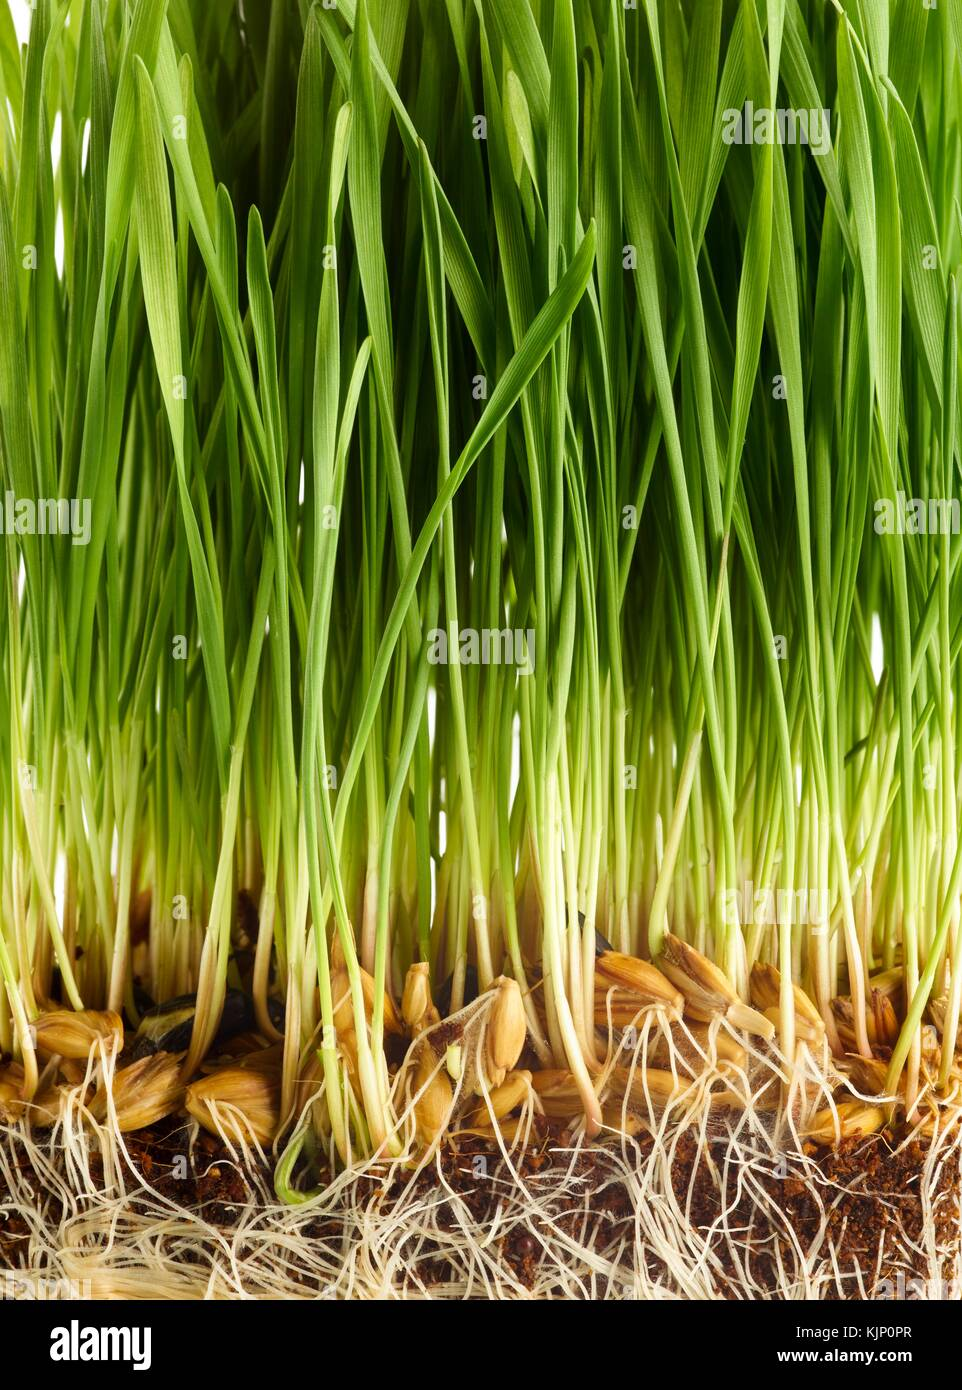 Sprouting wheatgrass against a white background. - Stock Image